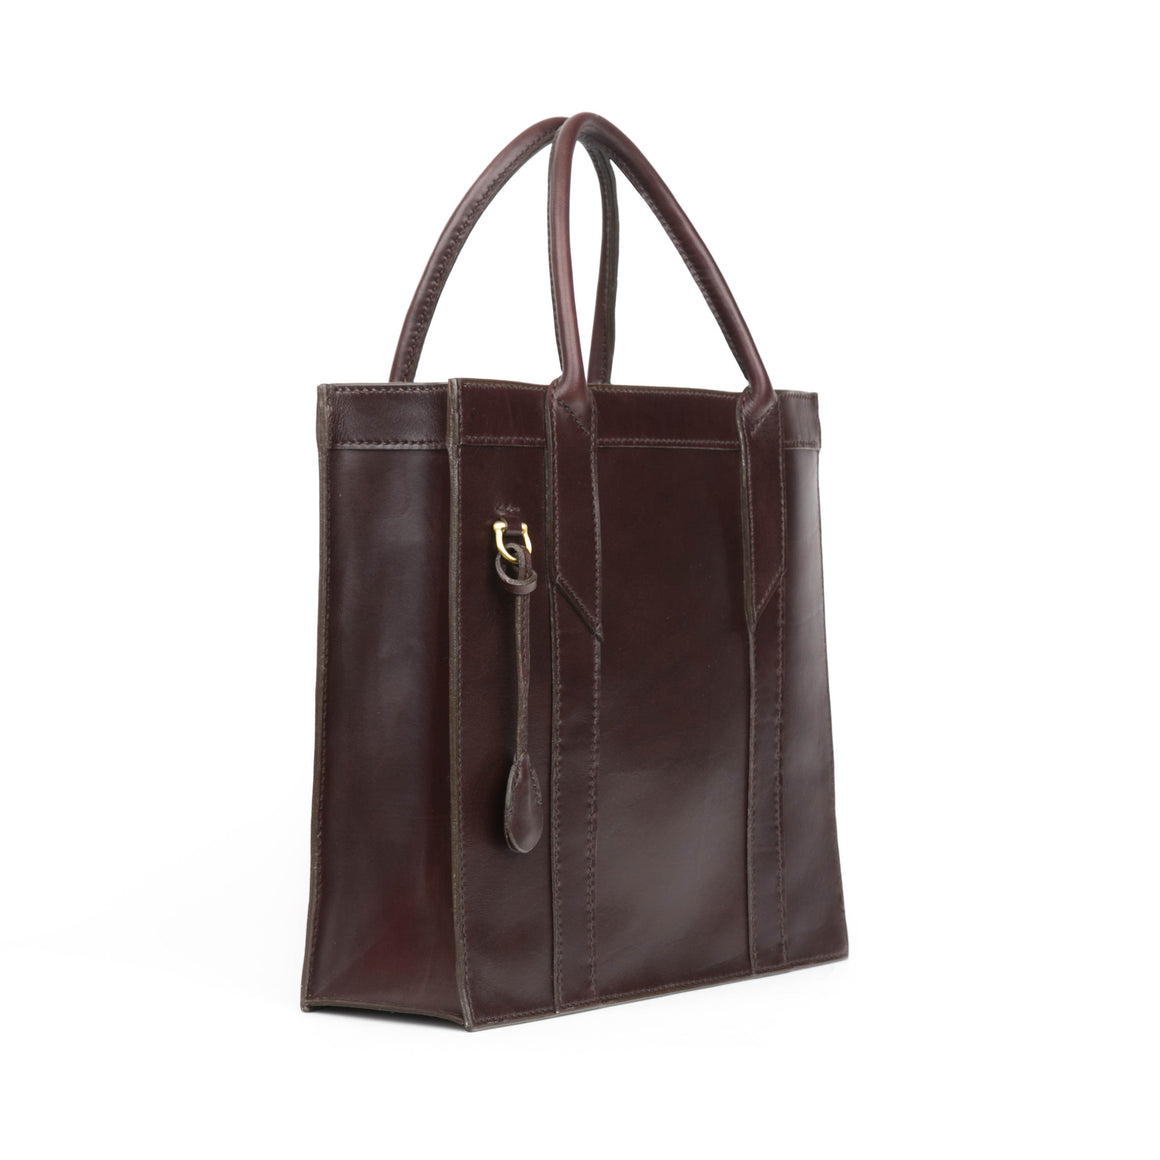 Box Tote in Brown